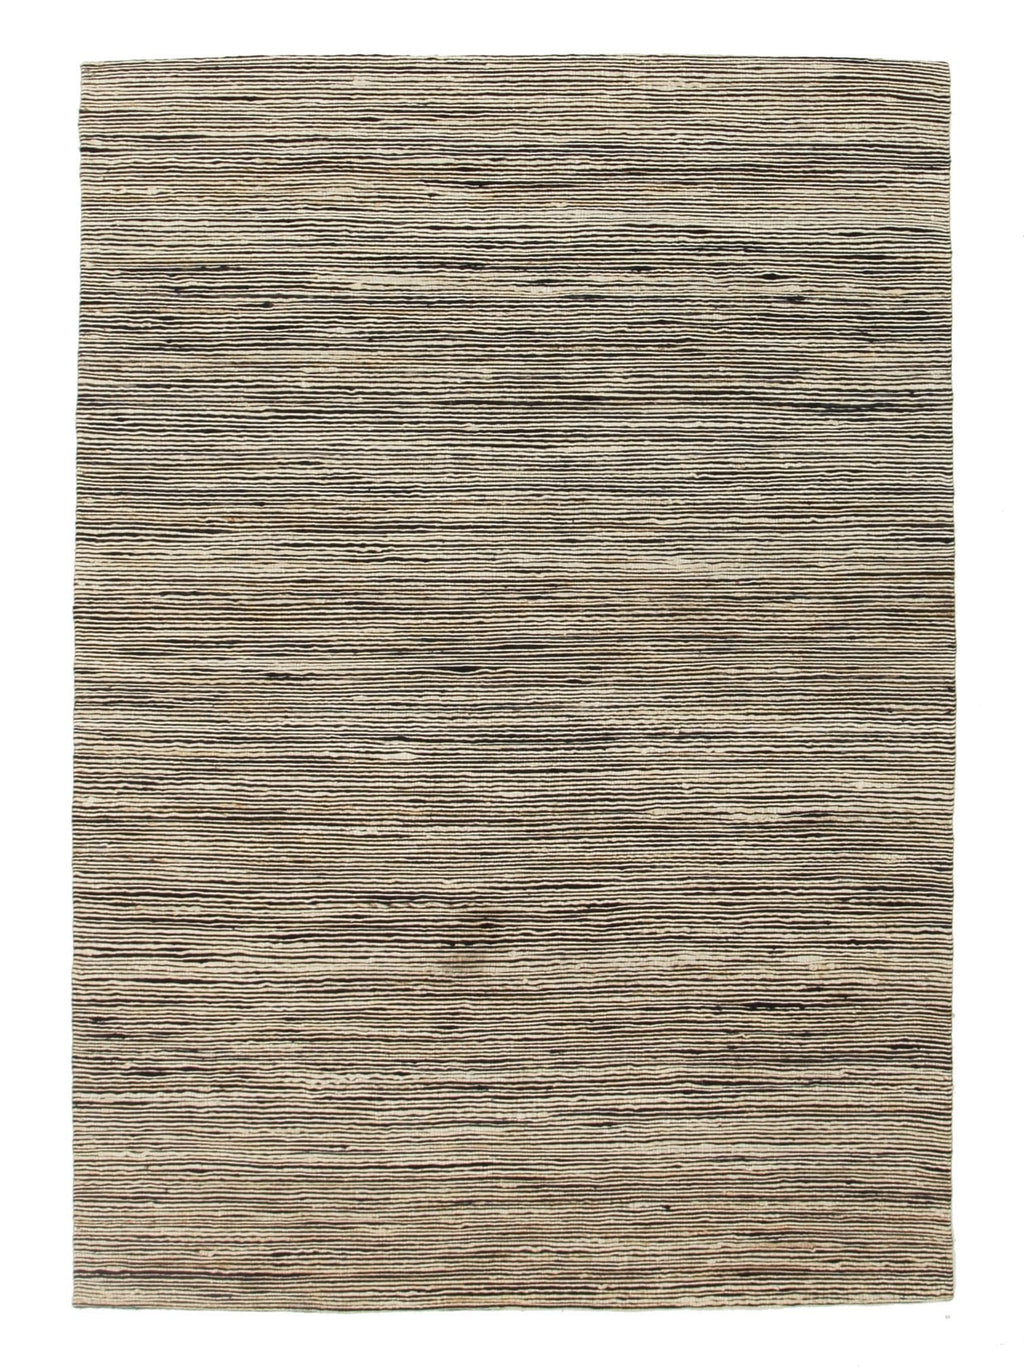 Pupukea Black & Natural Striped Hemp Rug